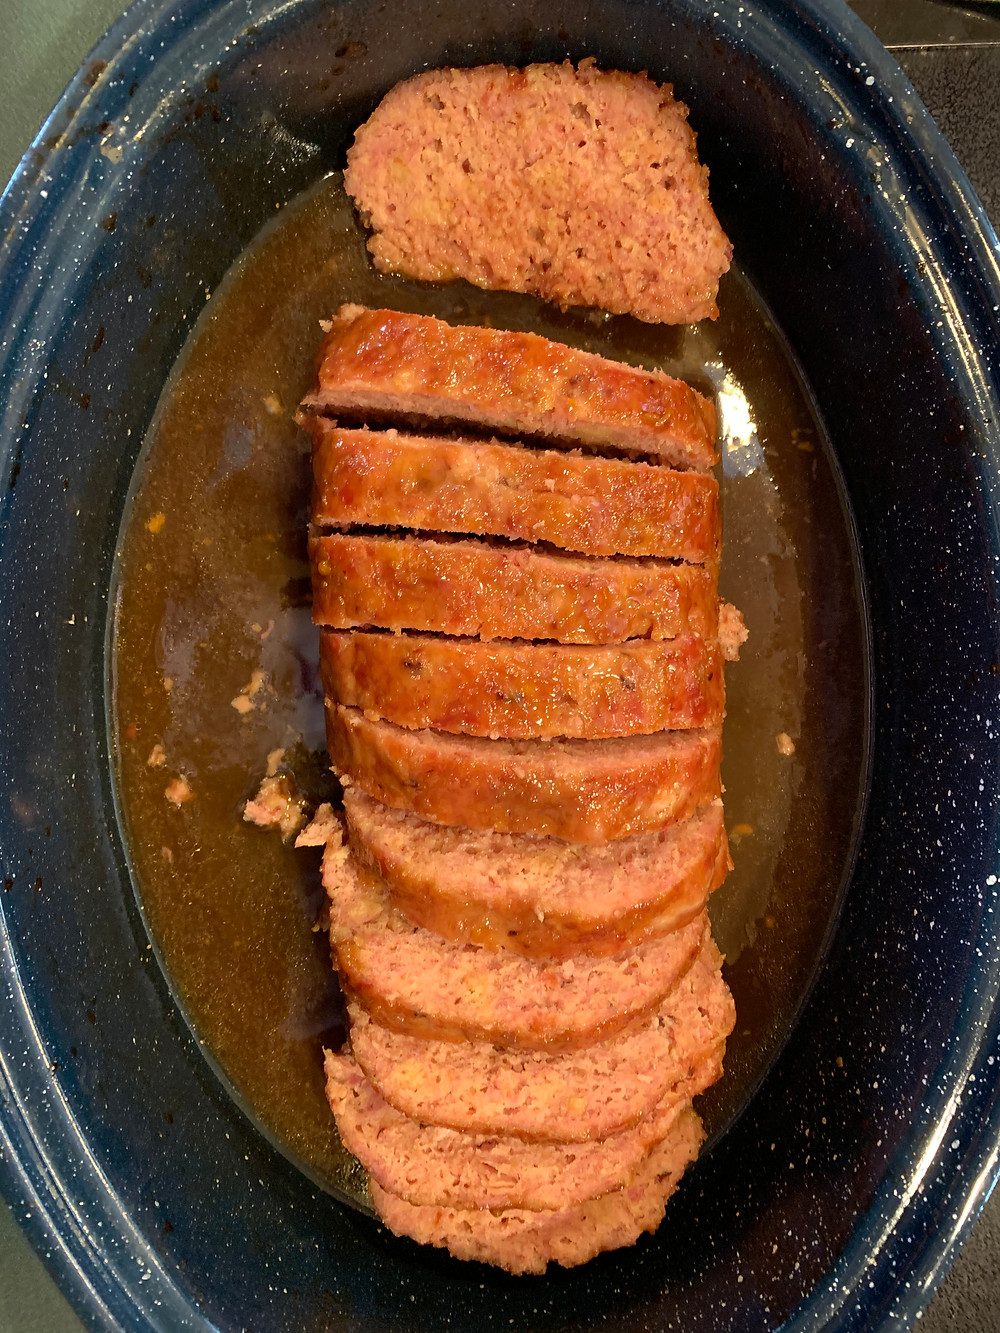 The loaf of meat is cut into inch wide pieces inside the black cooking pot.